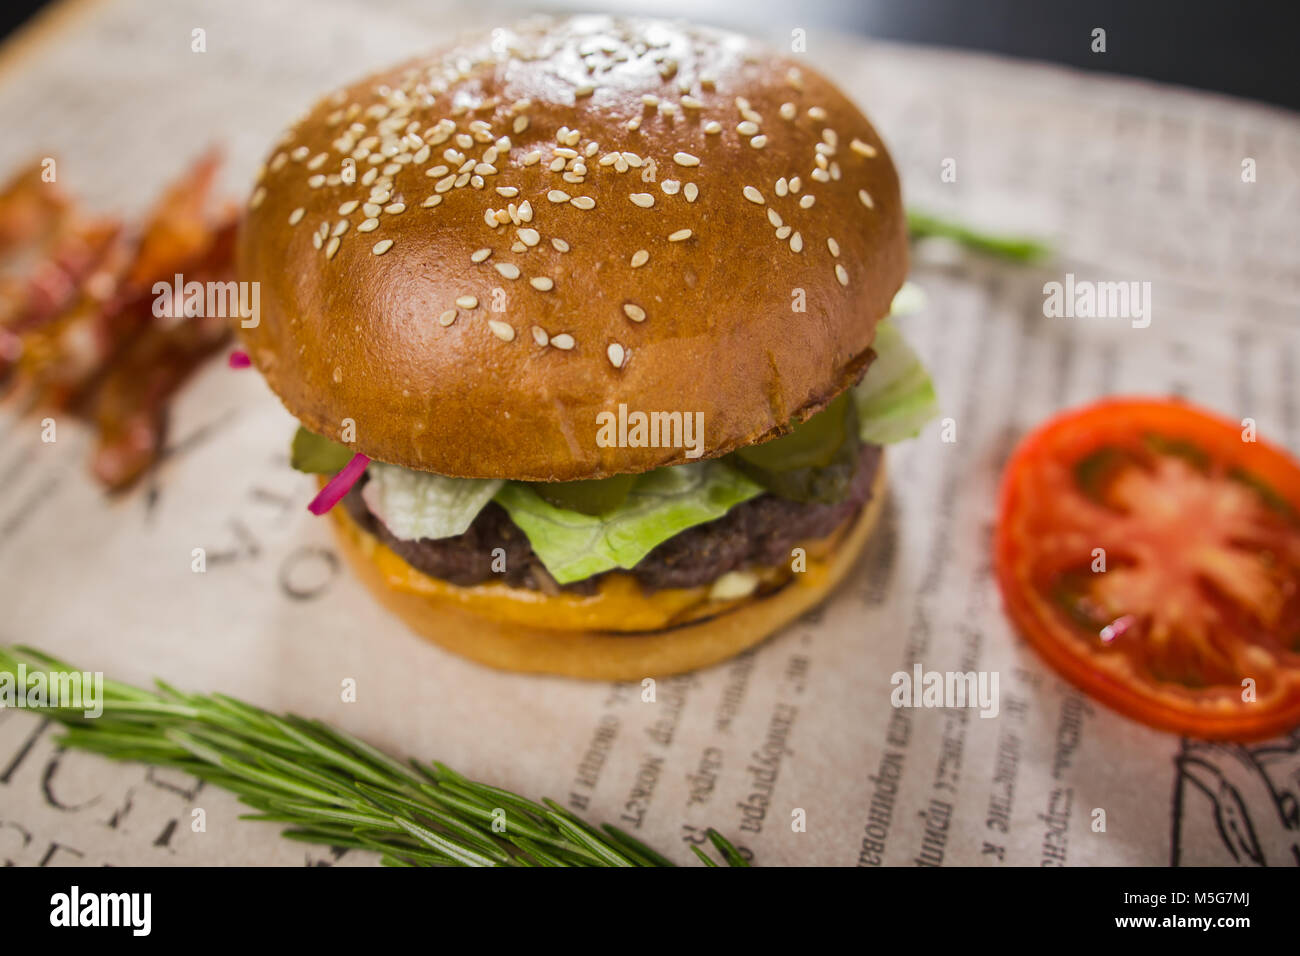 A fresh tasty burger with sliced tomato and bacon - Stock Image